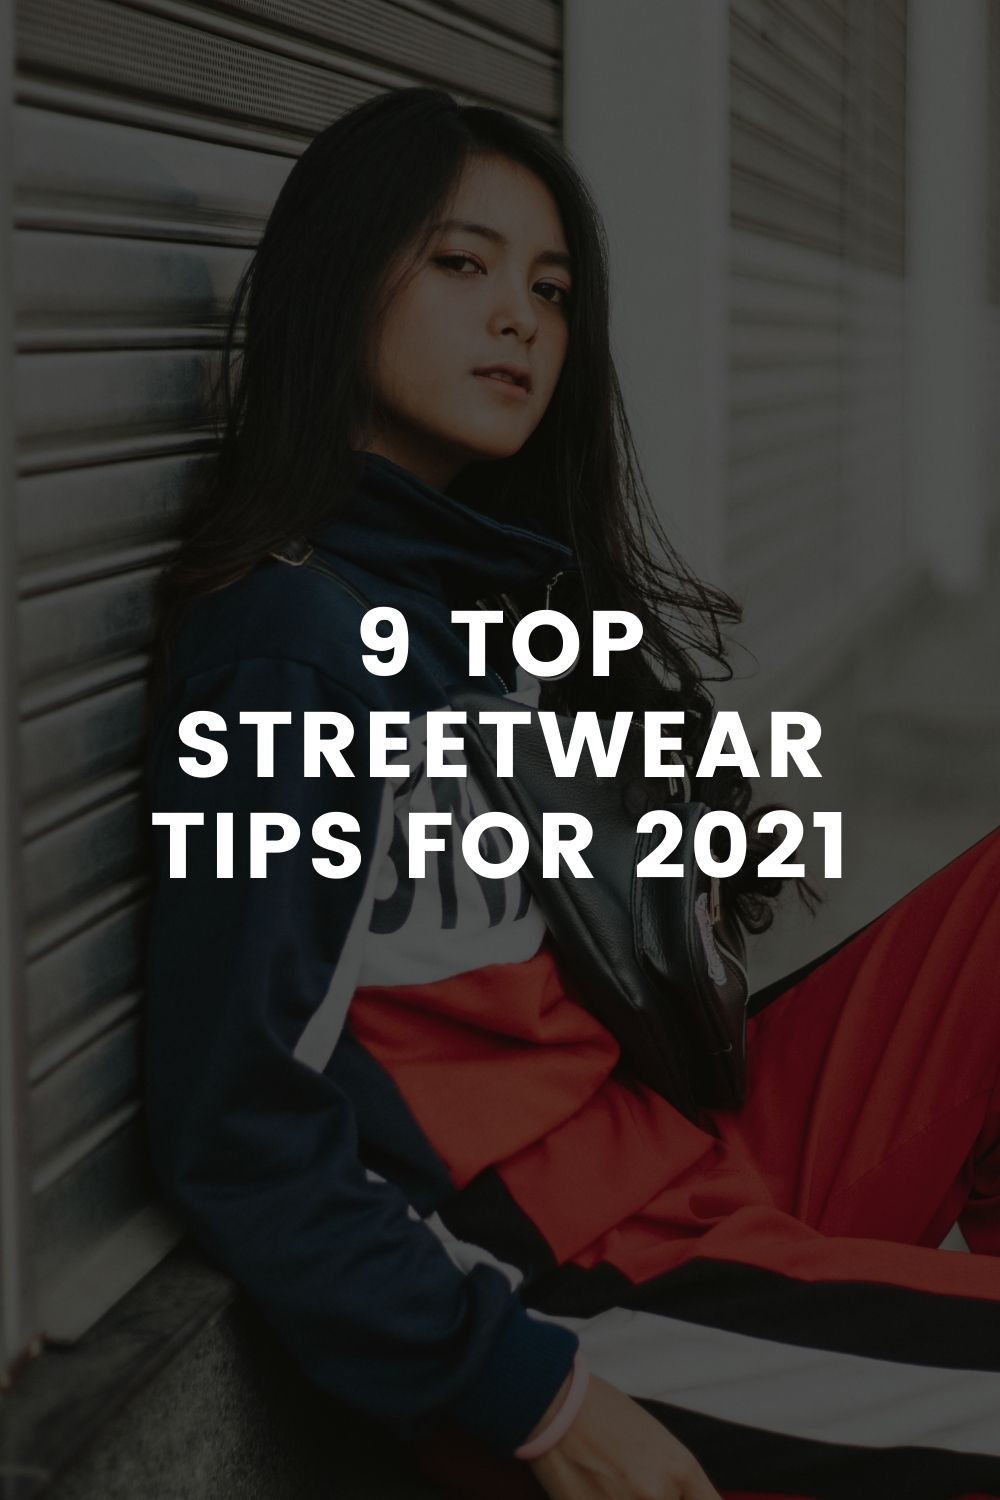 9 Top Streetwear Tips for 2021